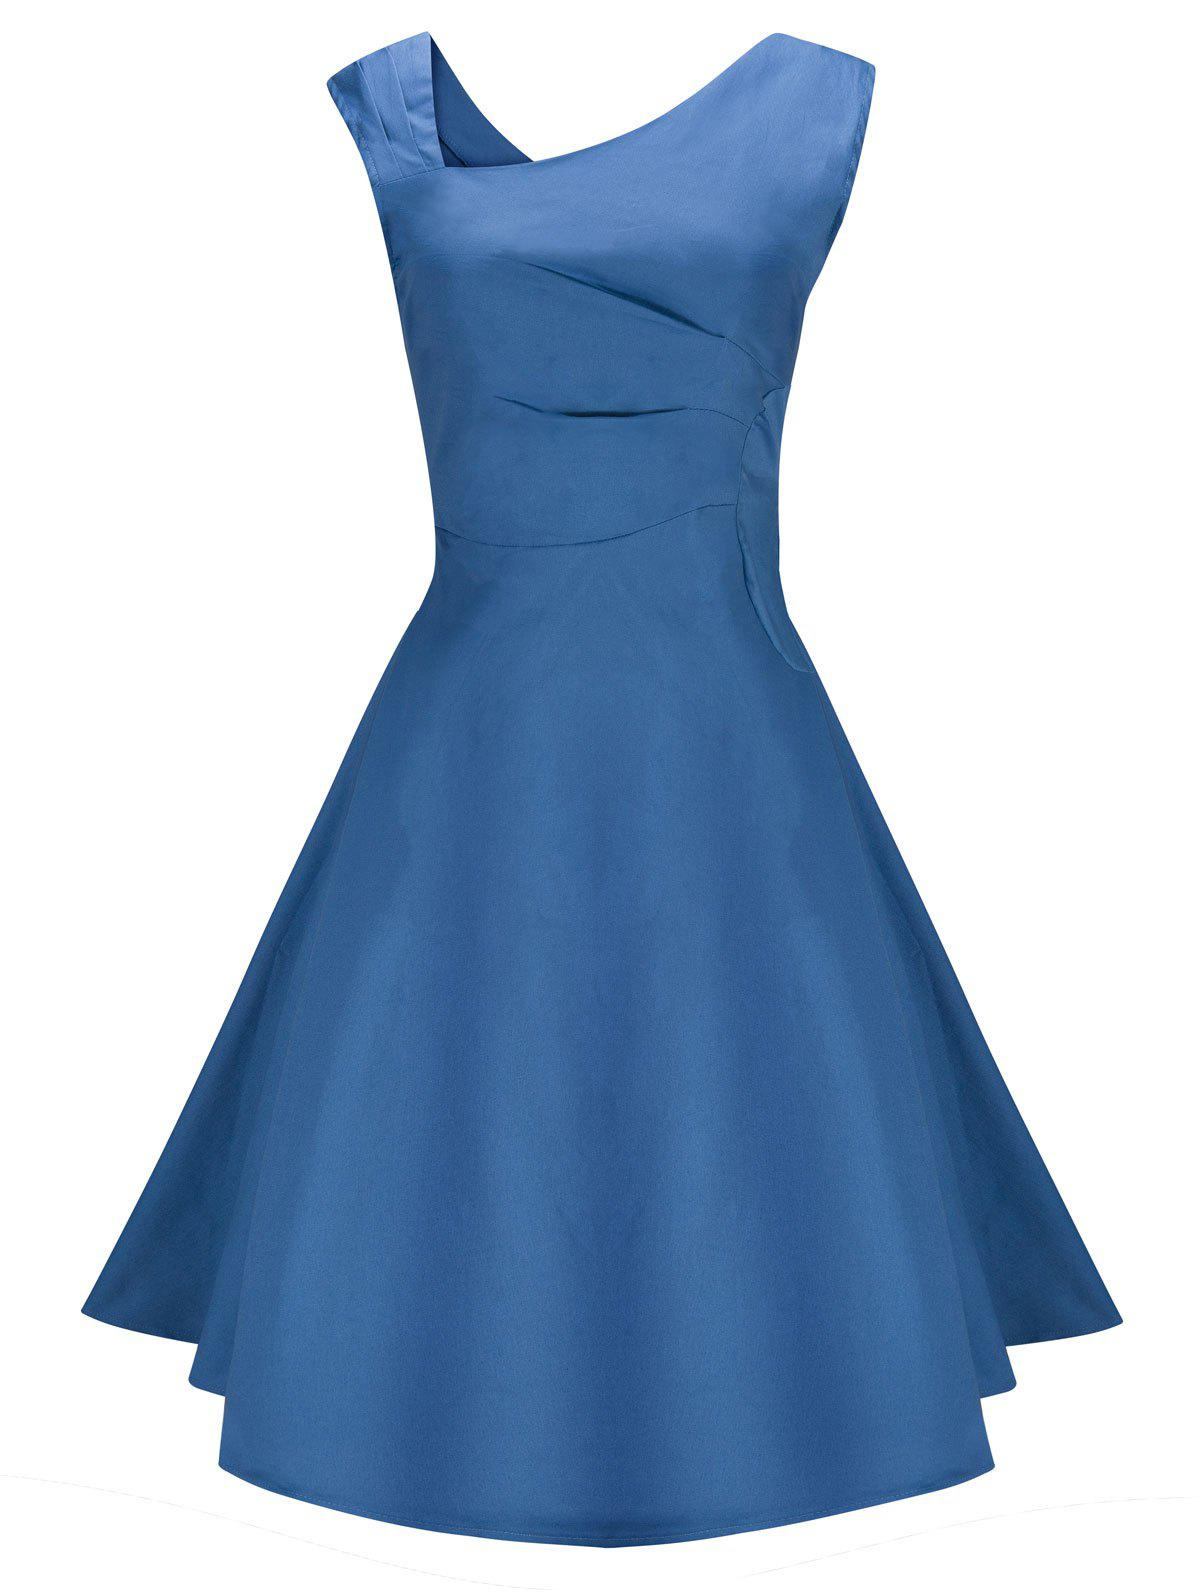 Vintage Skew Neck Semi Cocktail Party Pin Up DressWOMEN<br><br>Size: M; Color: BLUE; Style: Vintage; Material: Cotton,Polyester; Silhouette: Asymmetrical; Dress Type: Fit and Flare Dress,Skater Dress; Dresses Length: Knee-Length; Neckline: Skew Collar; Sleeve Length: Sleeveless; Pattern Type: Solid; With Belt: No; Season: Fall,Spring; Weight: 0.3500kg; Package Contents: 1 x Dress;